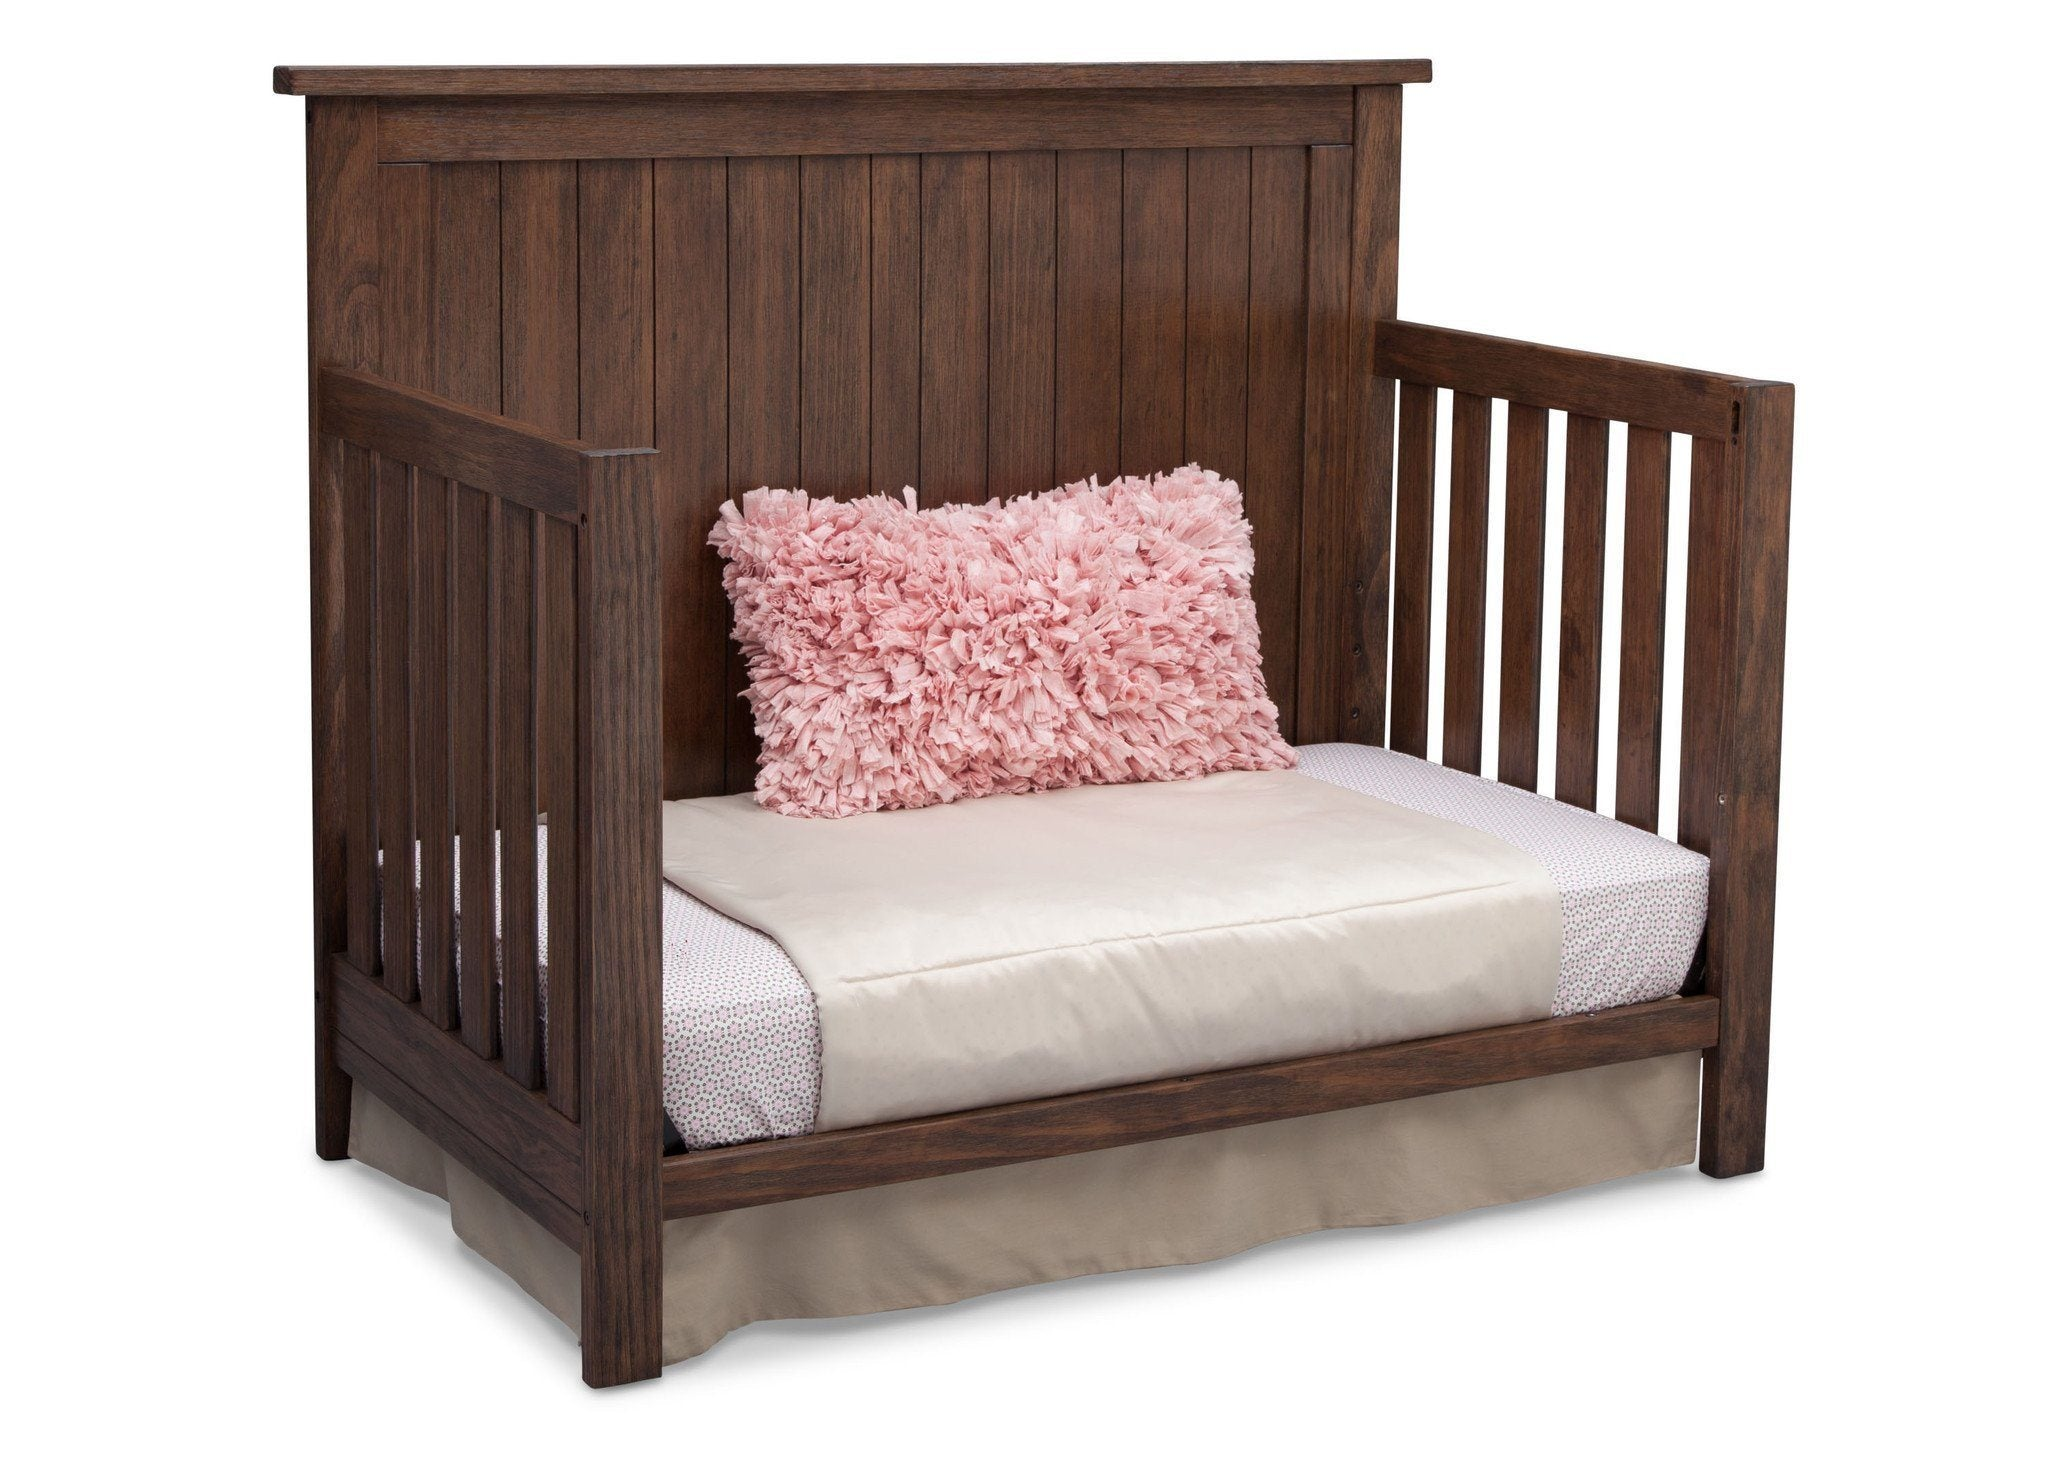 Serta Rustic Oak (229) Northbrook 4-in-1 Crib, Side View with Toddler Bed Conversion b6b